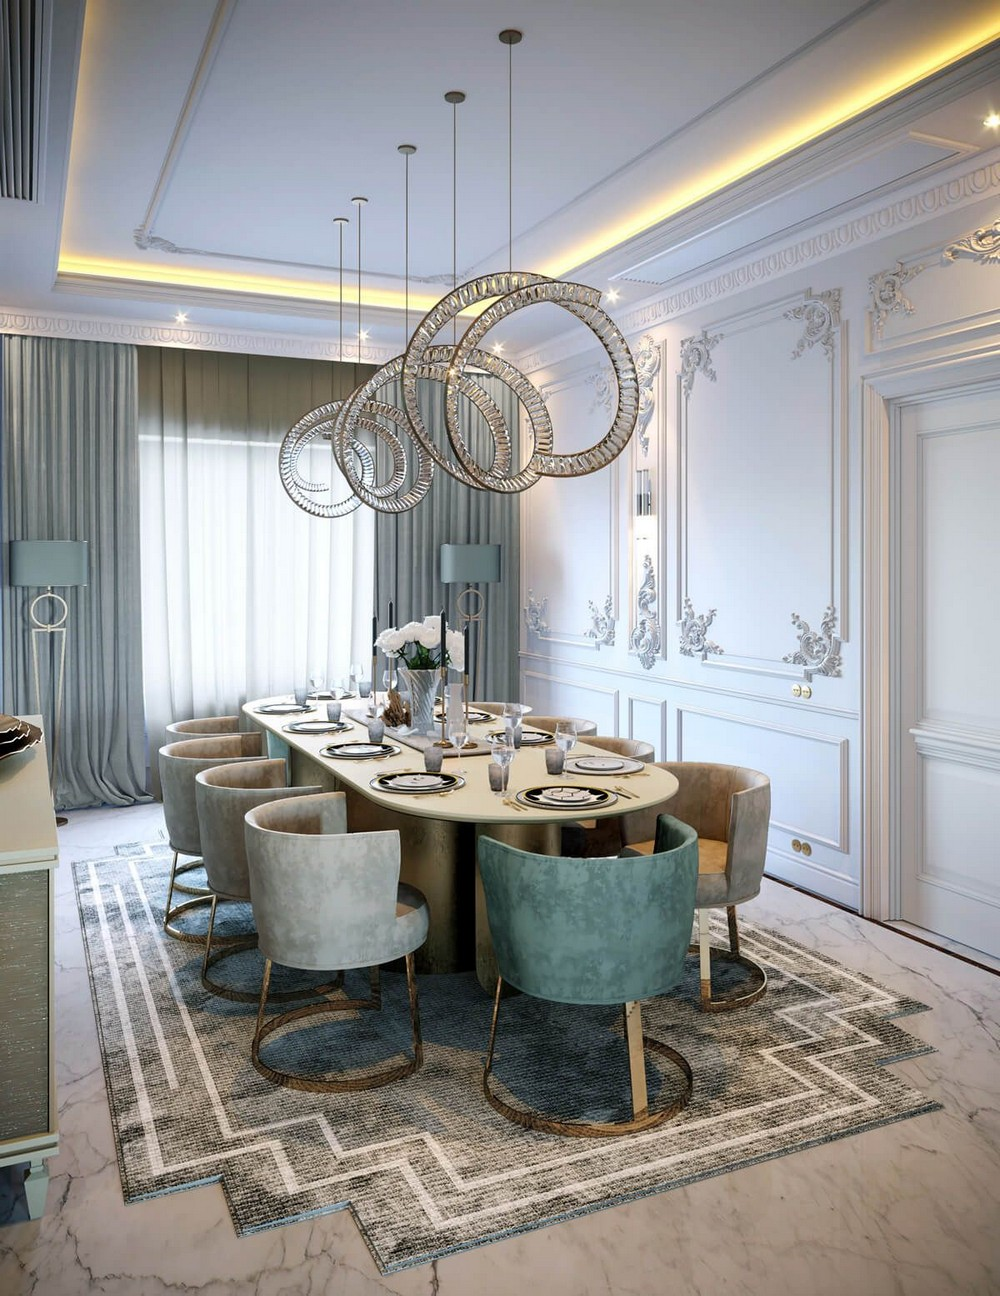 interior design projects Interior Design Projects: Neoclassical Palace in Riyadh by Comelite Architecture Interior Design Projects Neoclassical Palace in Riyadh by Comelite Architecture 13